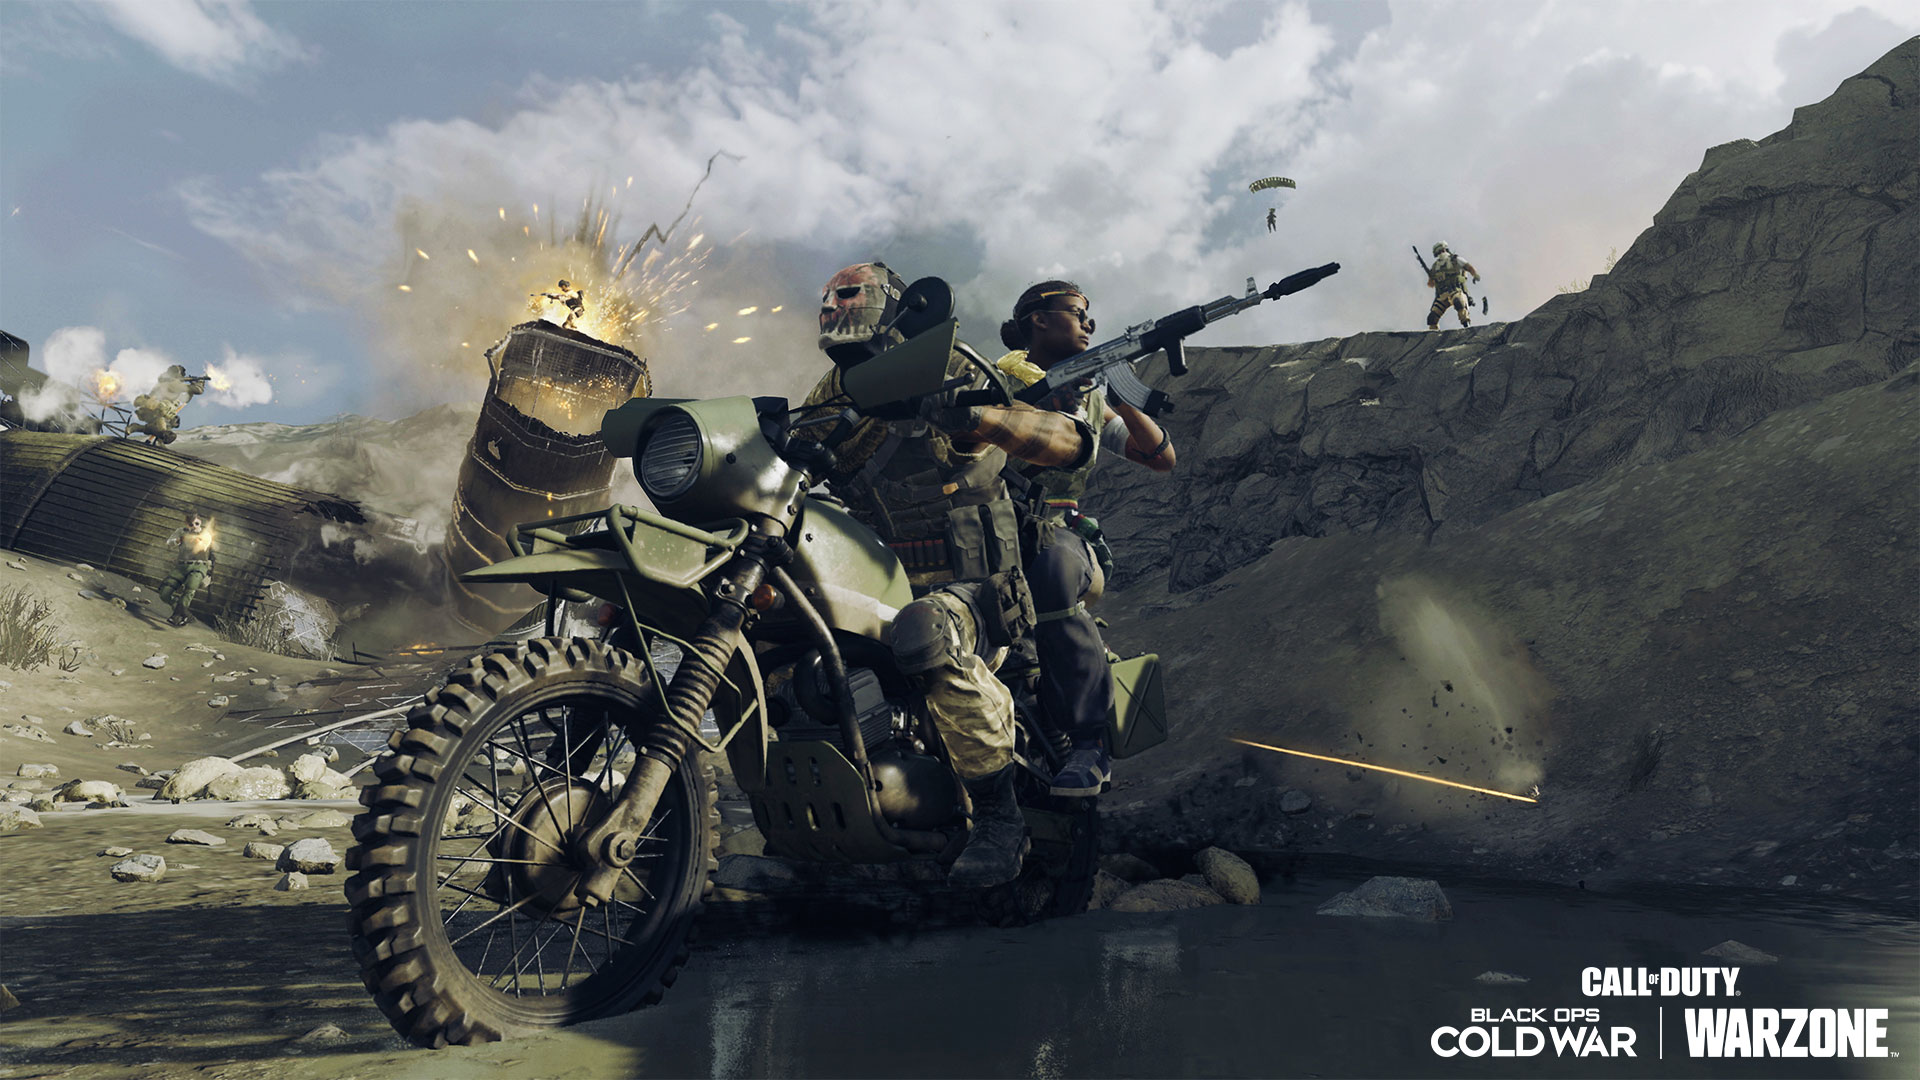 Two people riding a dirt bike while armed with a rocket launcher